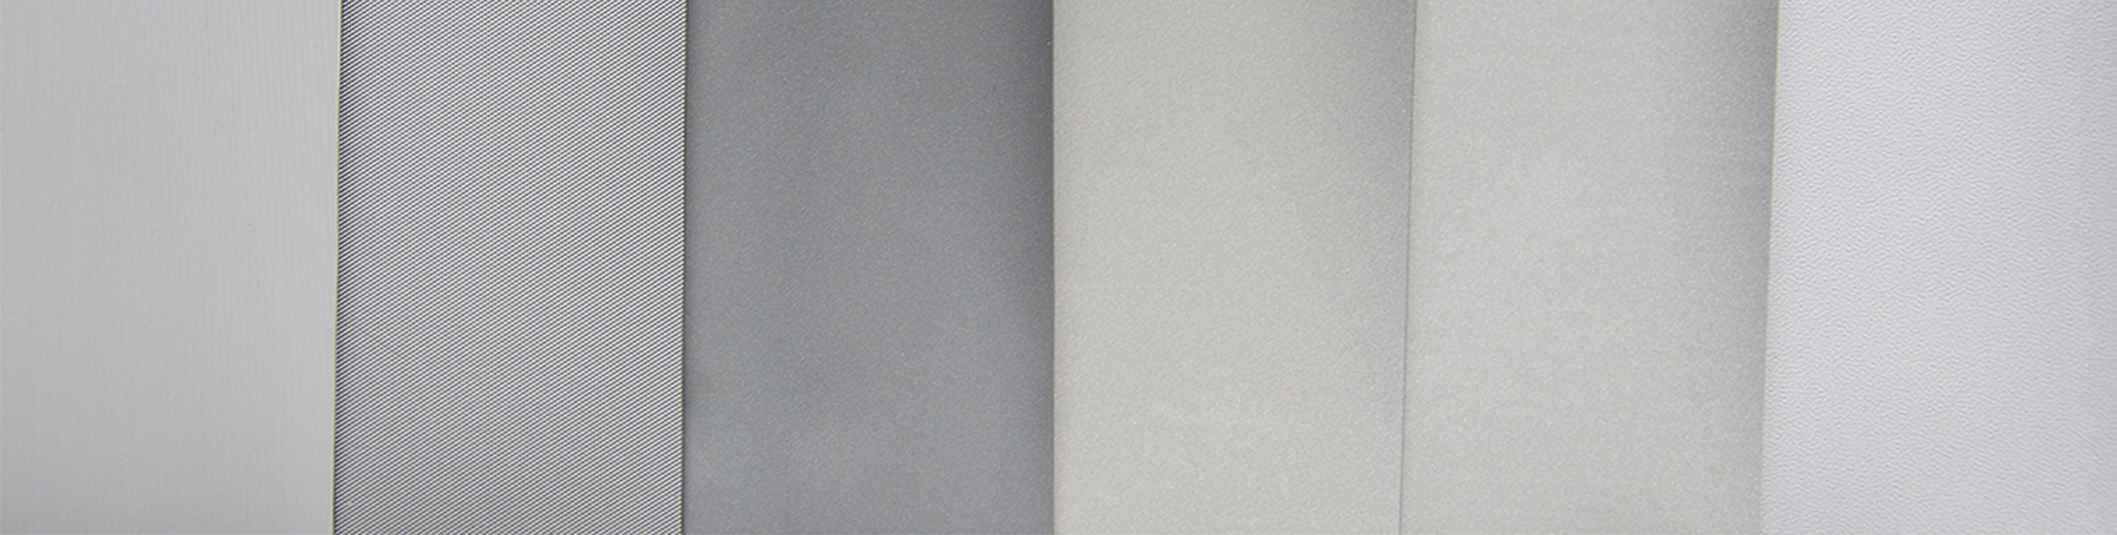 category-High Quality Manufacturing Of Ambient Light Rejecting Fabrics -XY Screens-img